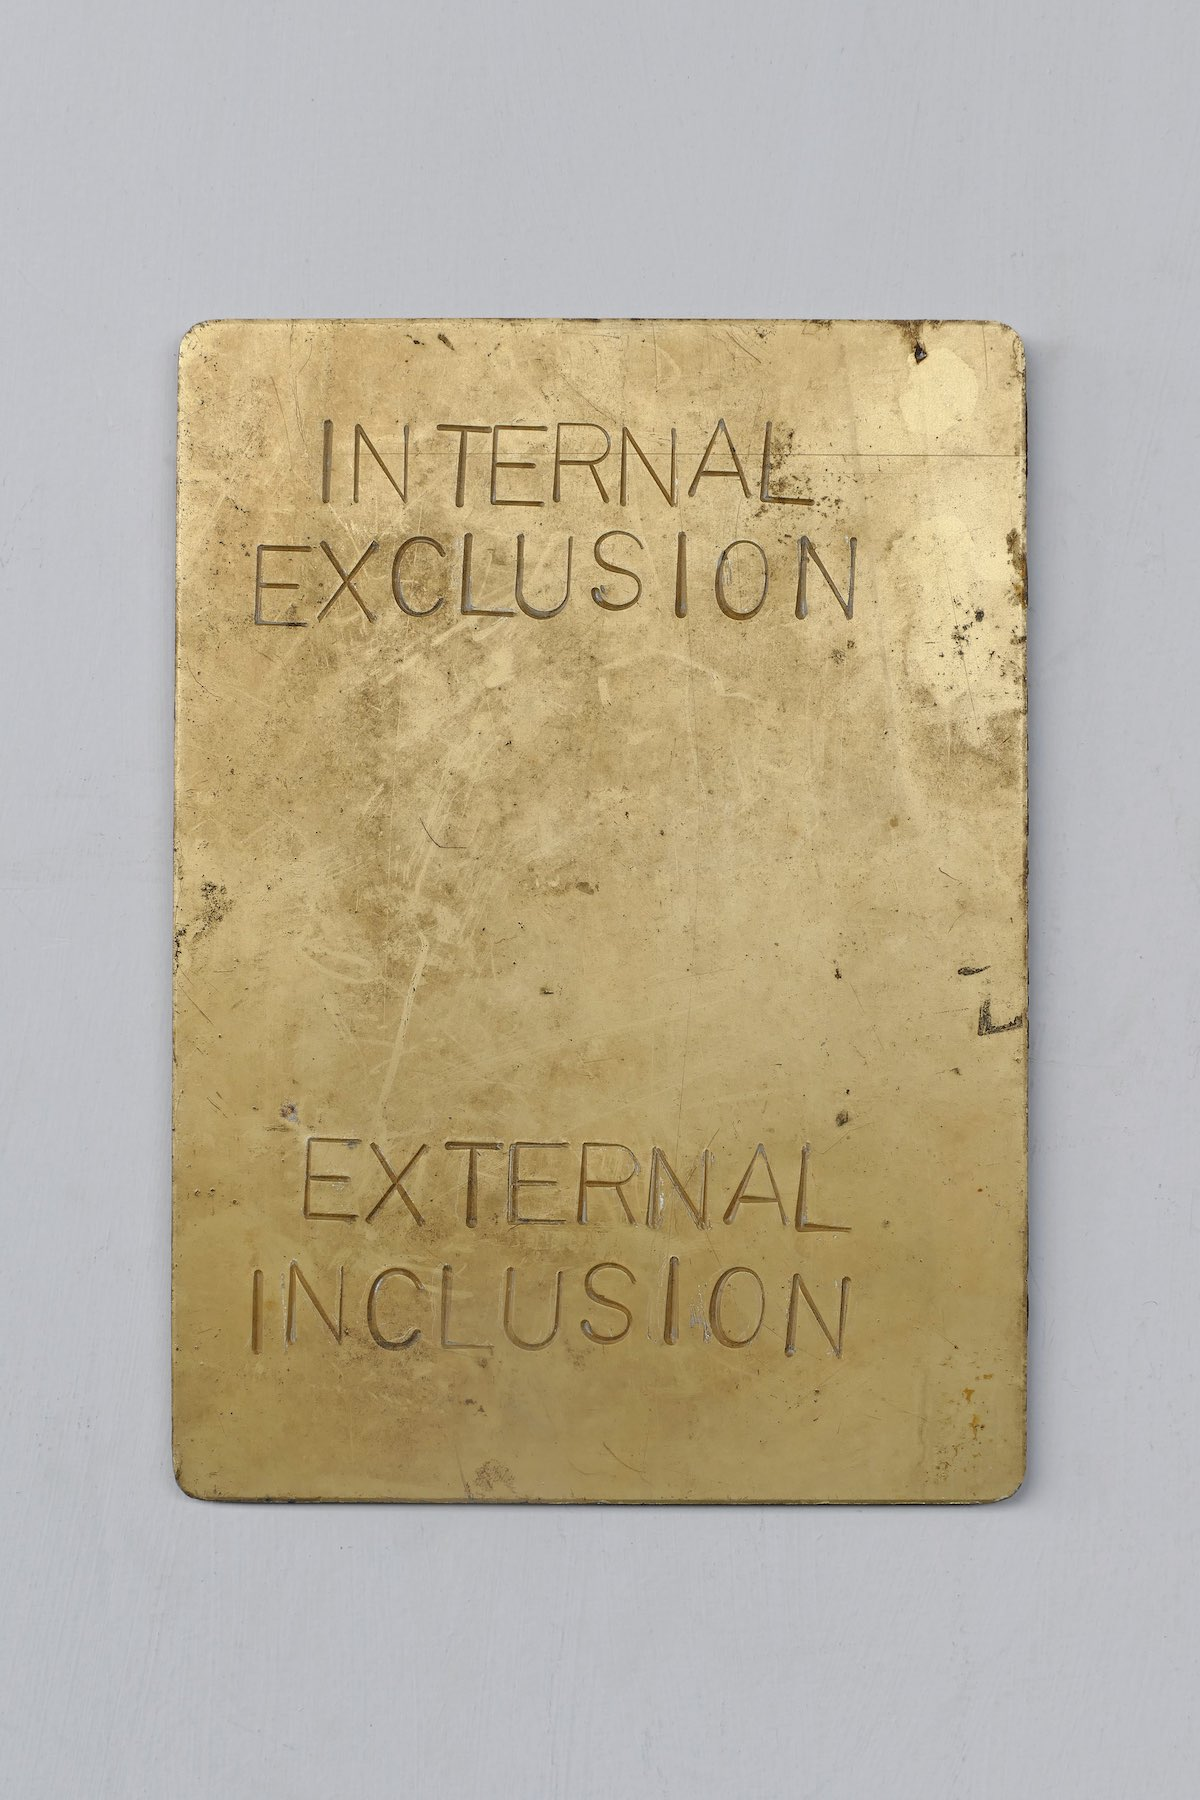 Internal Exclusion External Inclusion